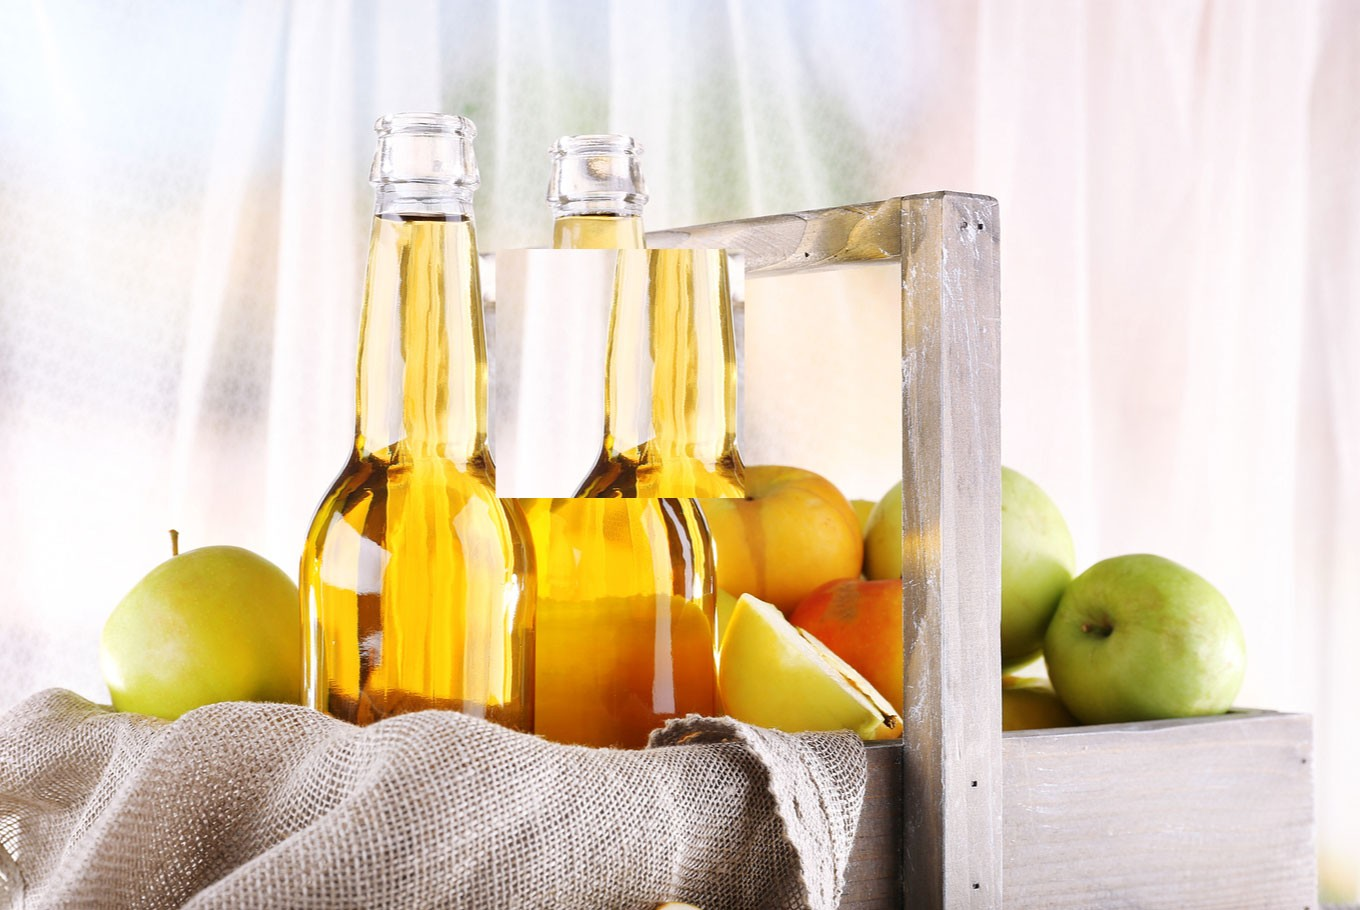 Health benefits of apple vinegar that you may not know